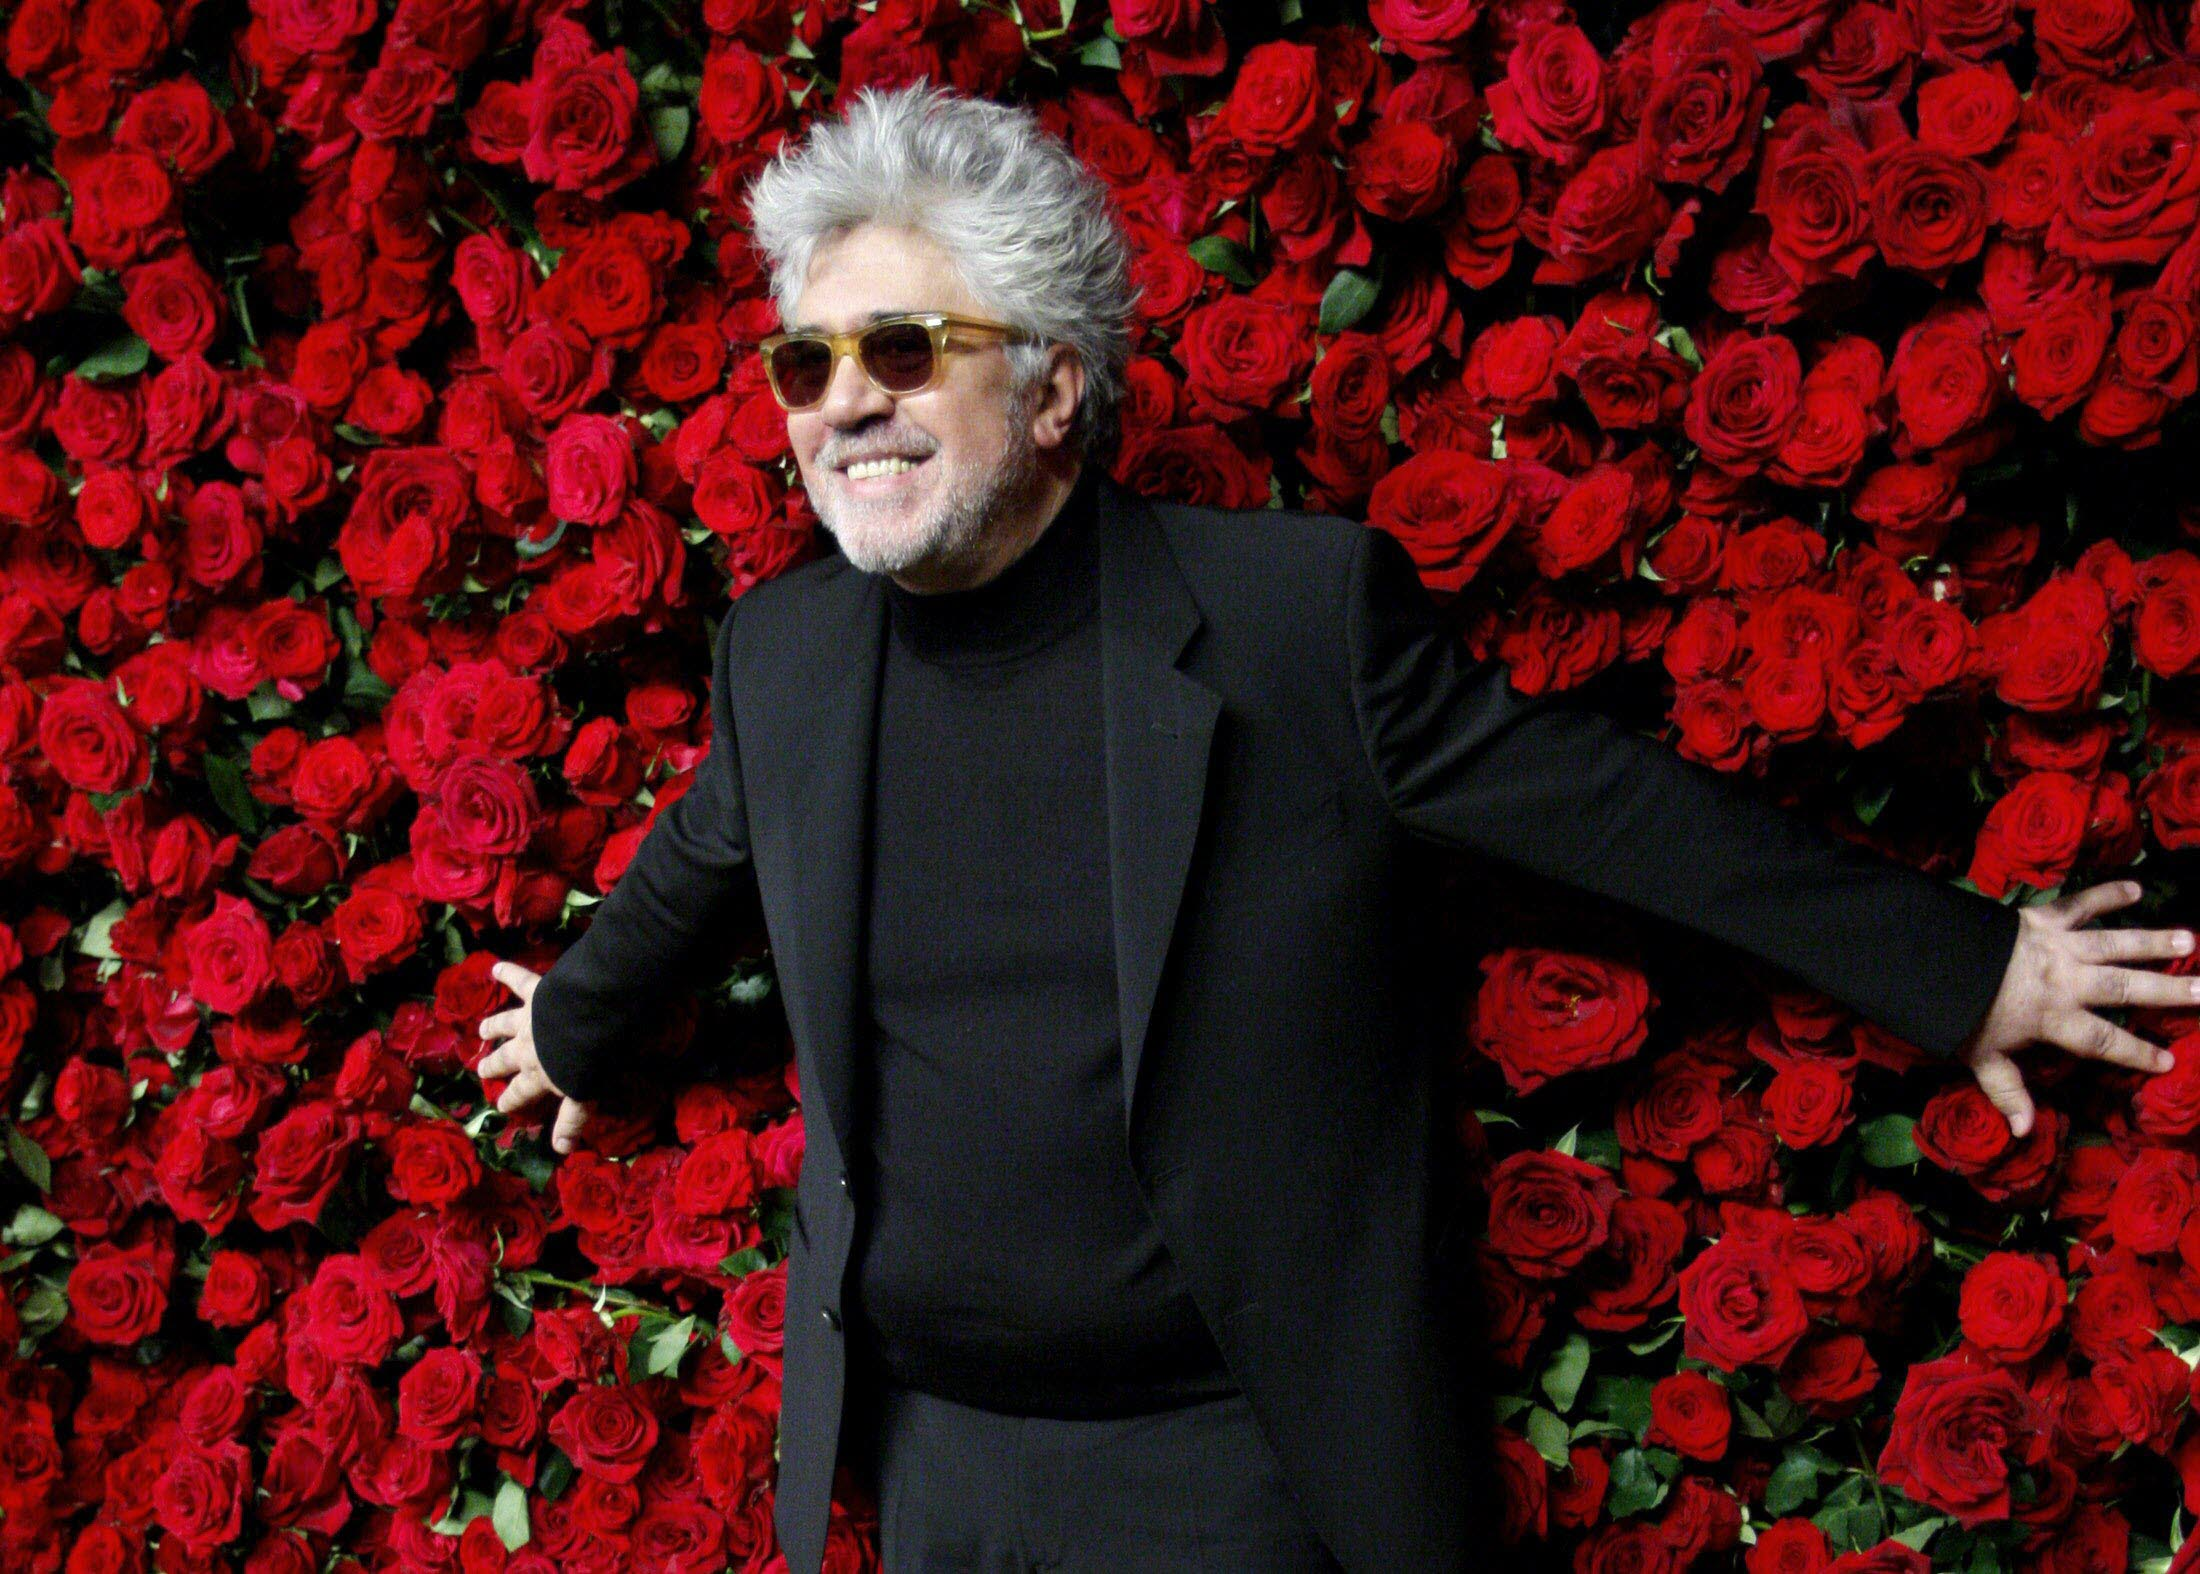 Spanish director Pedro Almodovar attends the Museum of Modern art's fourth annual Film Benefit in New York November 15, 2011. REUTERS/Kena Betancur (UNITED STATES - Tags: ENTERTAINMENT) TELETIPOS_CORREO:%%%,FOTOGRAFÍA,%%%,MUSEUM